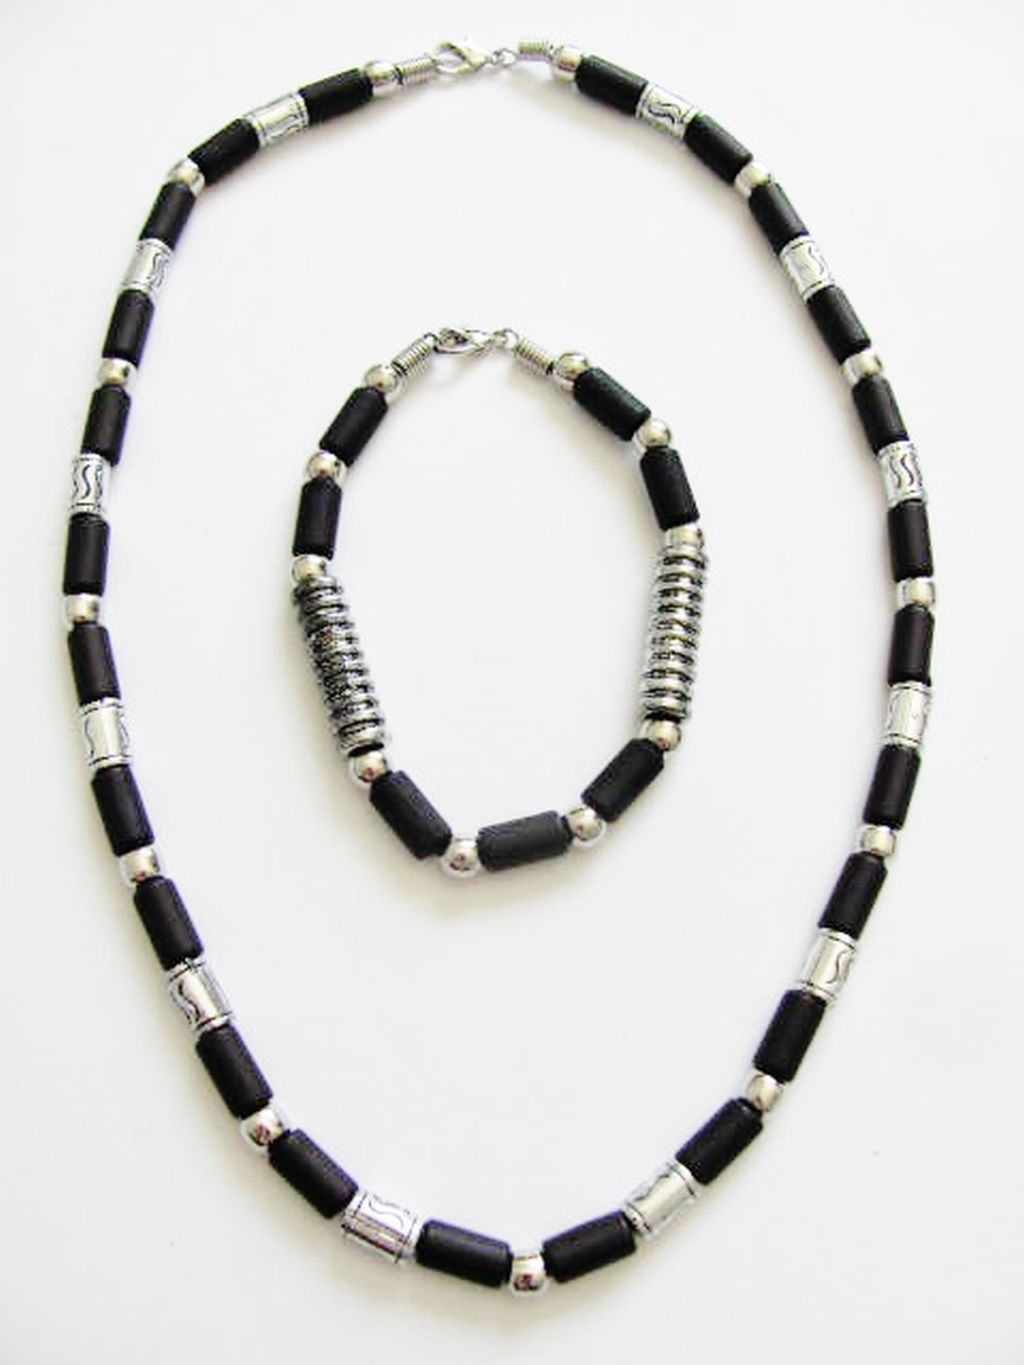 Cancun Hot Chrome/Extreme Black Men's Bead Necklace Bracelet, Surfer Style